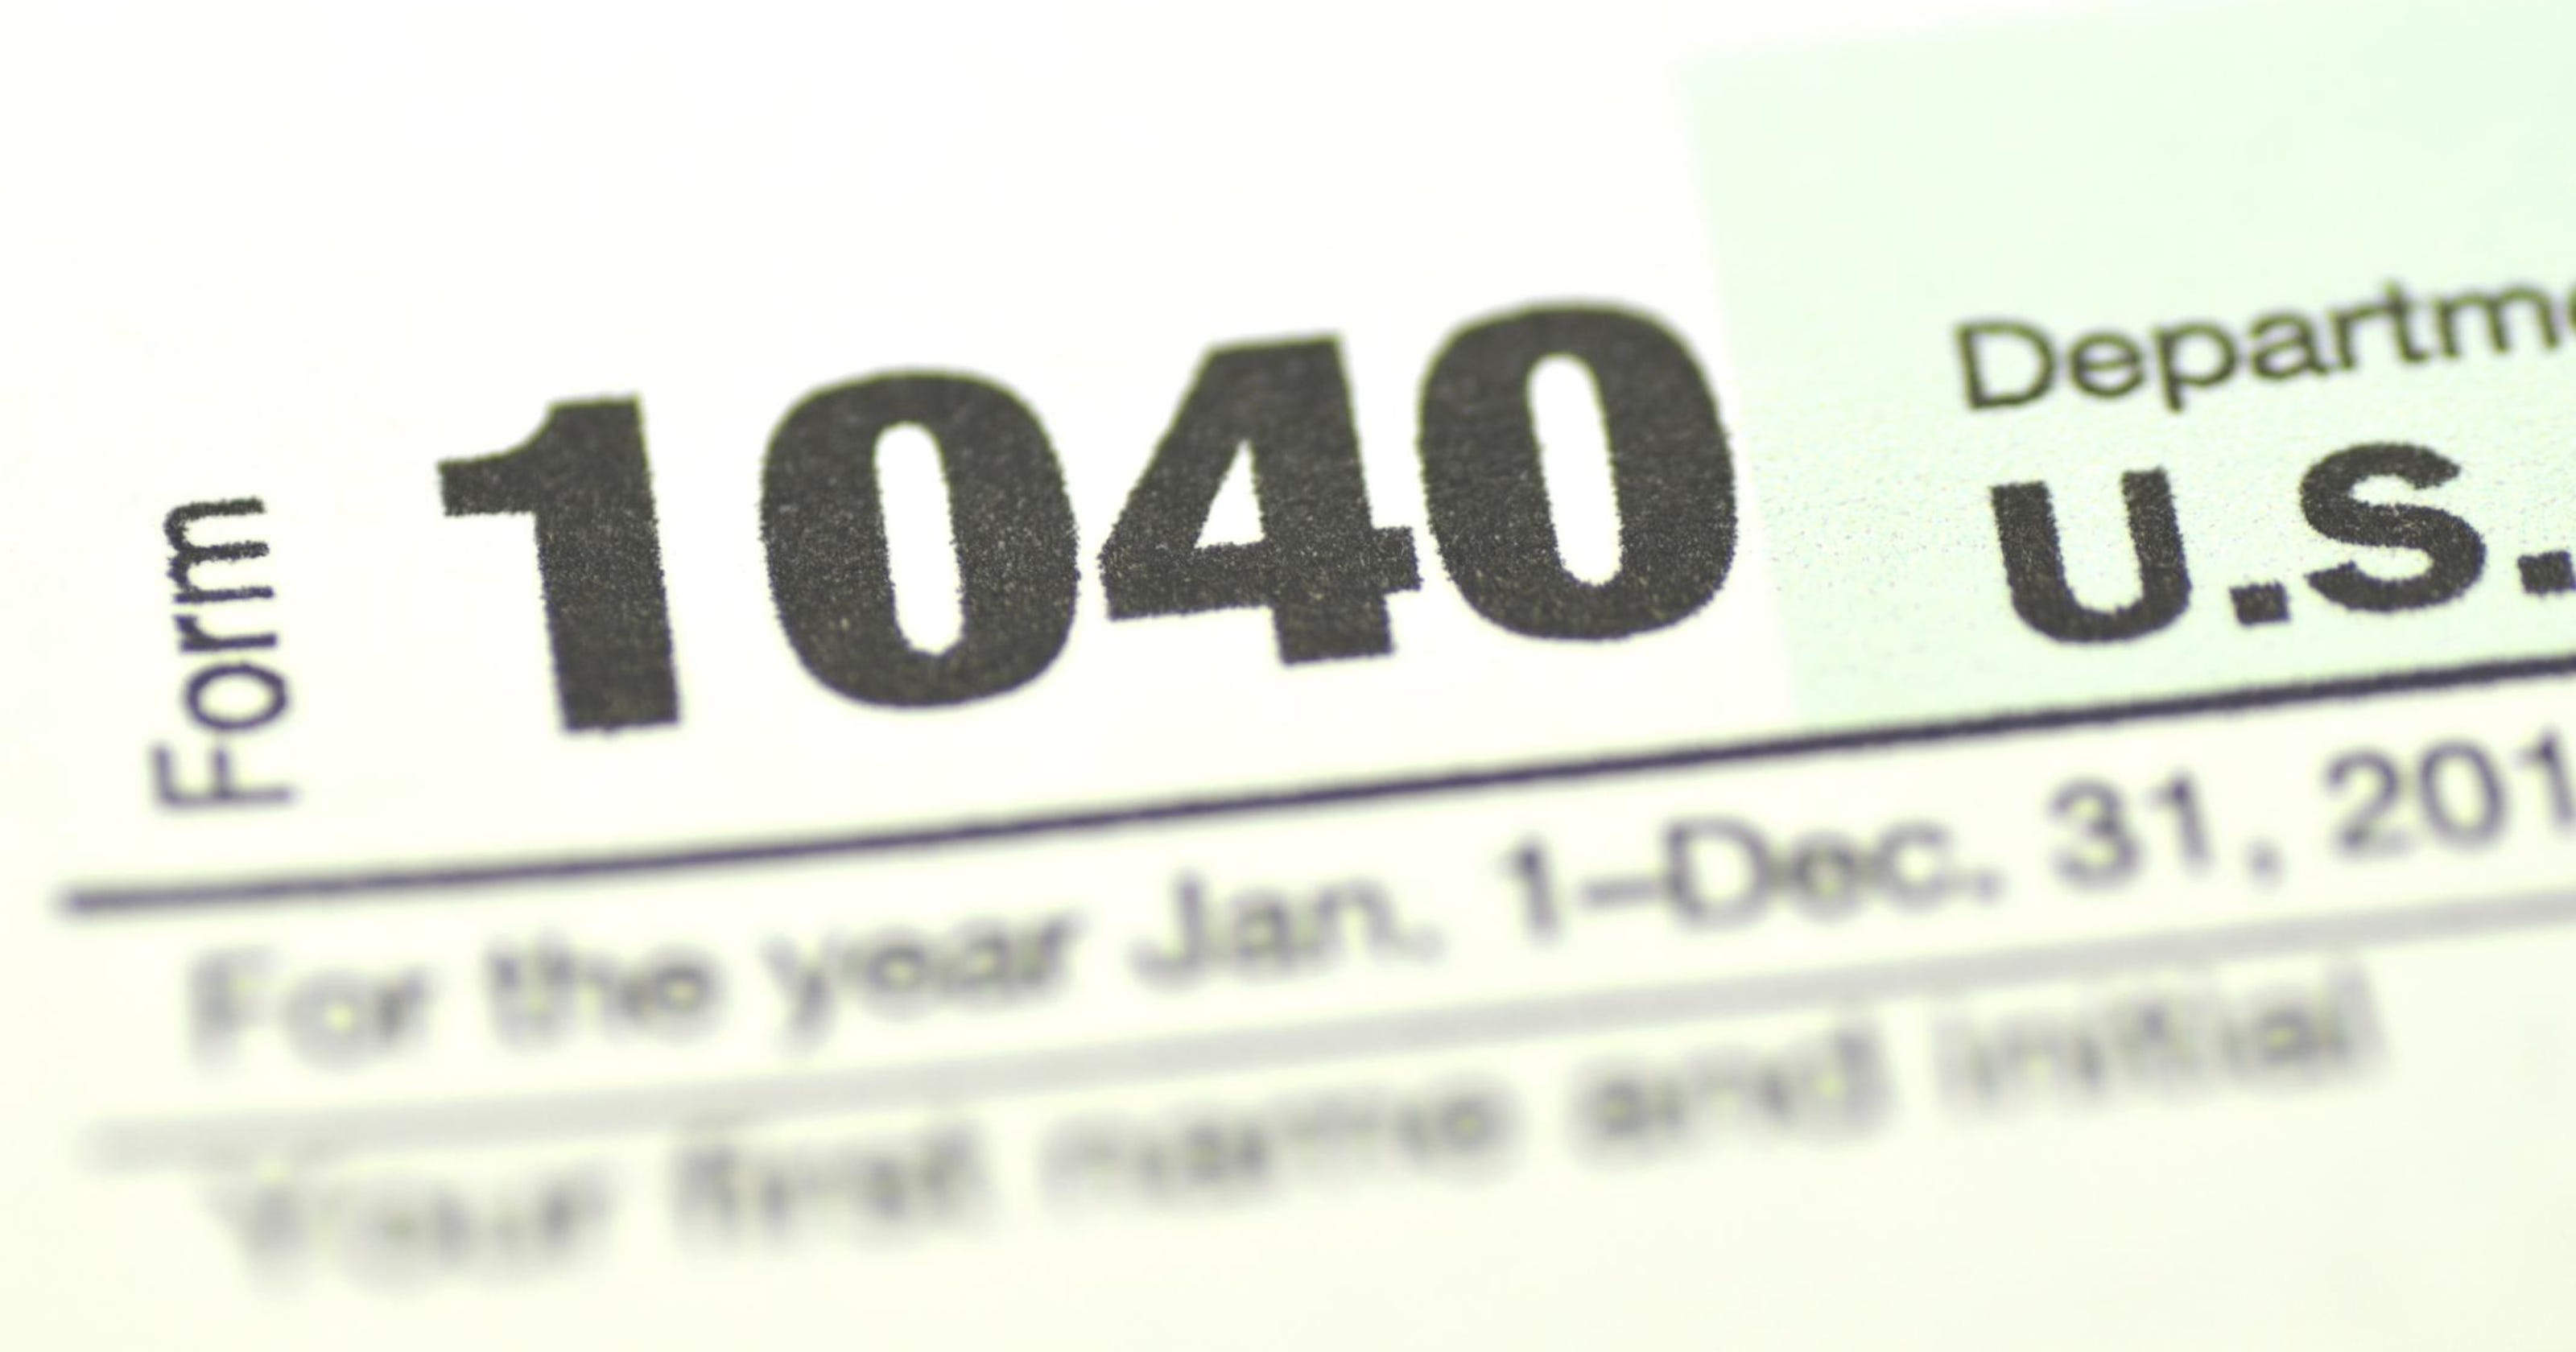 Biz expert: Owe the IRS? There are options